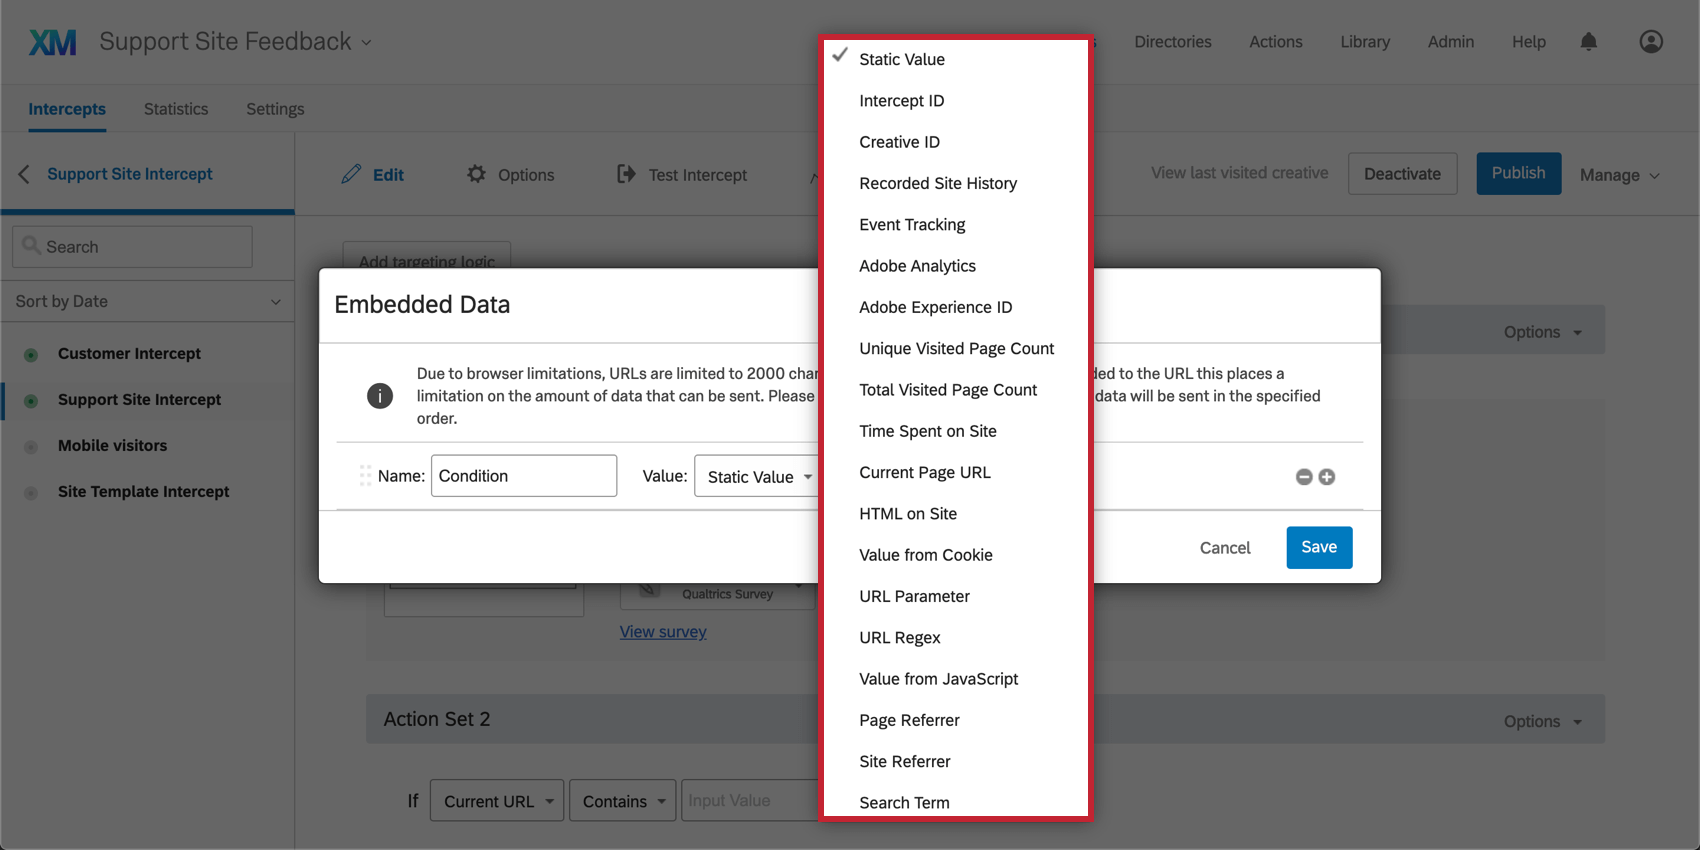 Value dropdown reveals a long list of options, explained in the section below